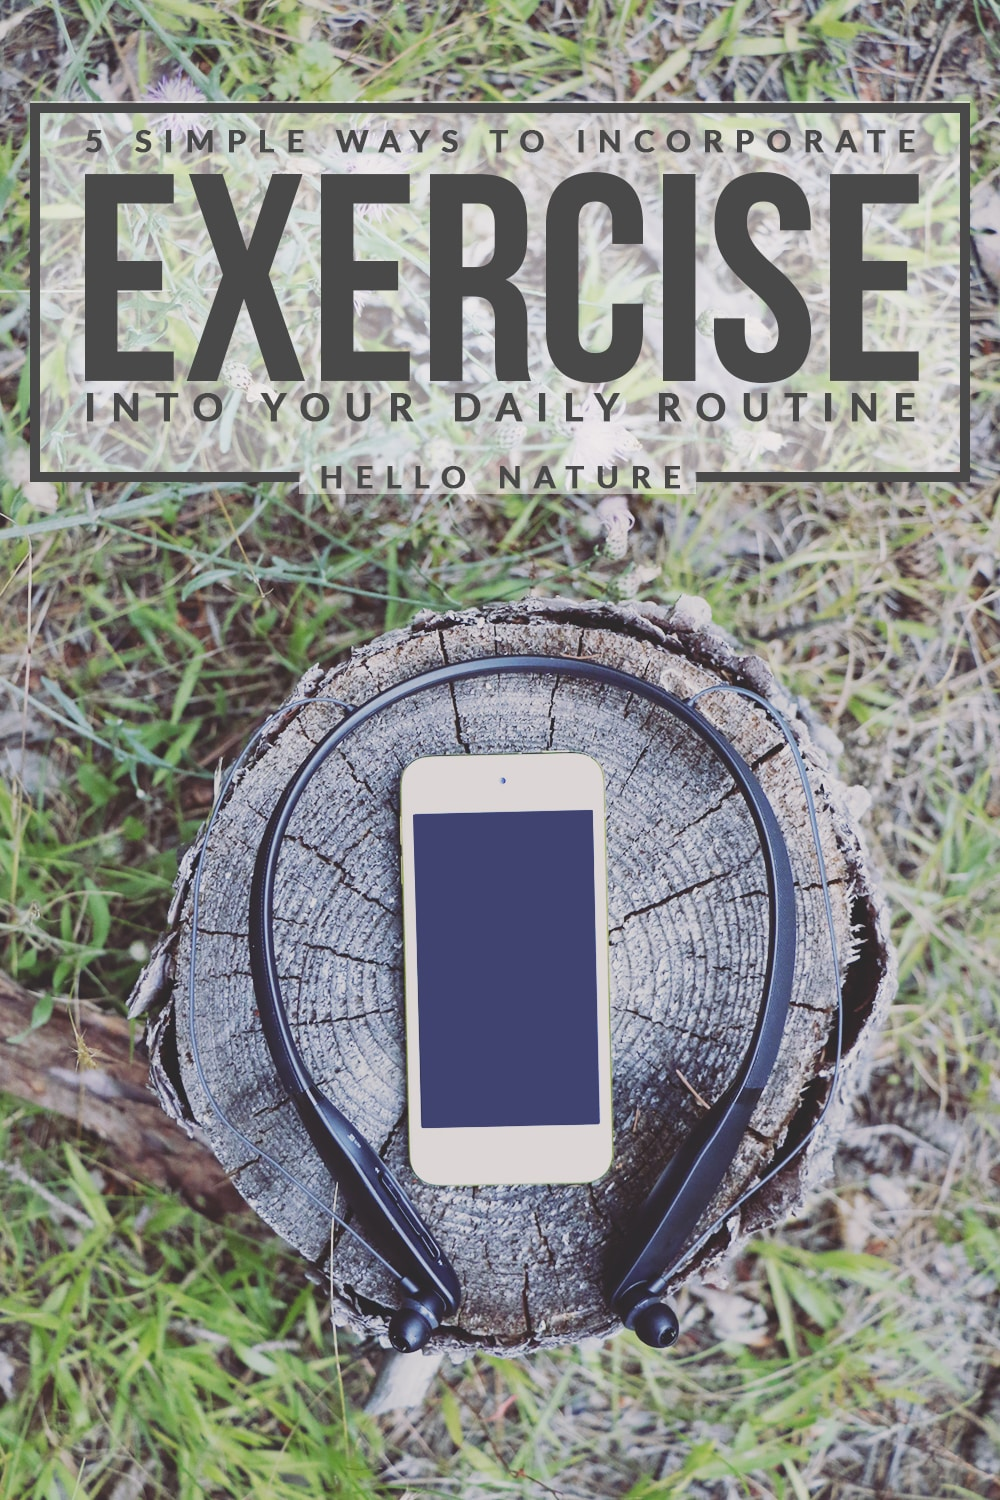 Exercising doesn't have to be super time-consuming! Here are five simple ways to incorporate exercise into your daily routine.